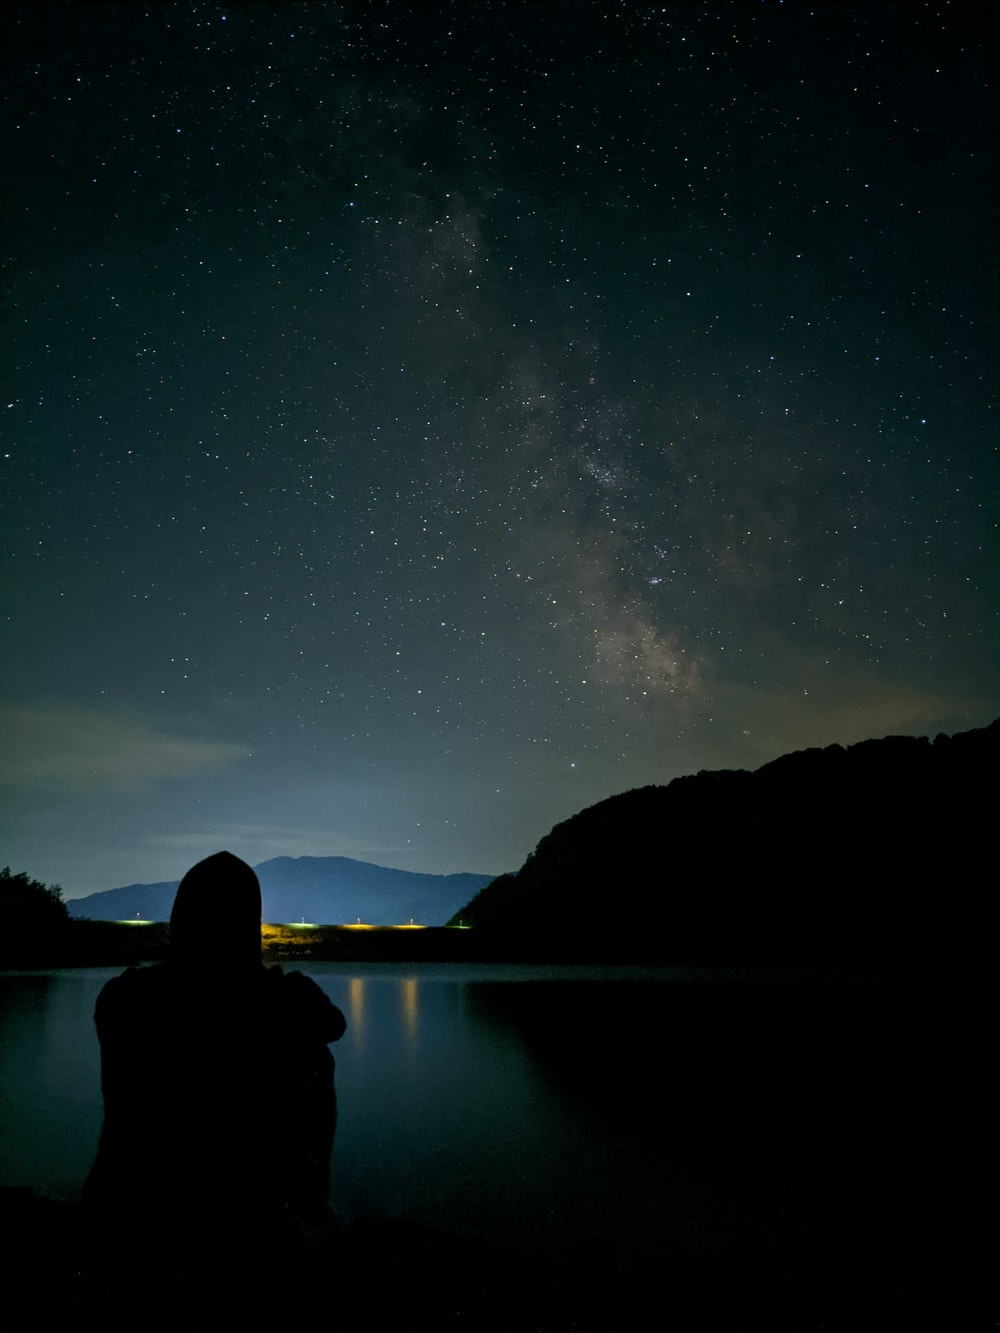 silhouette of person sitting on rock near body of water during night time